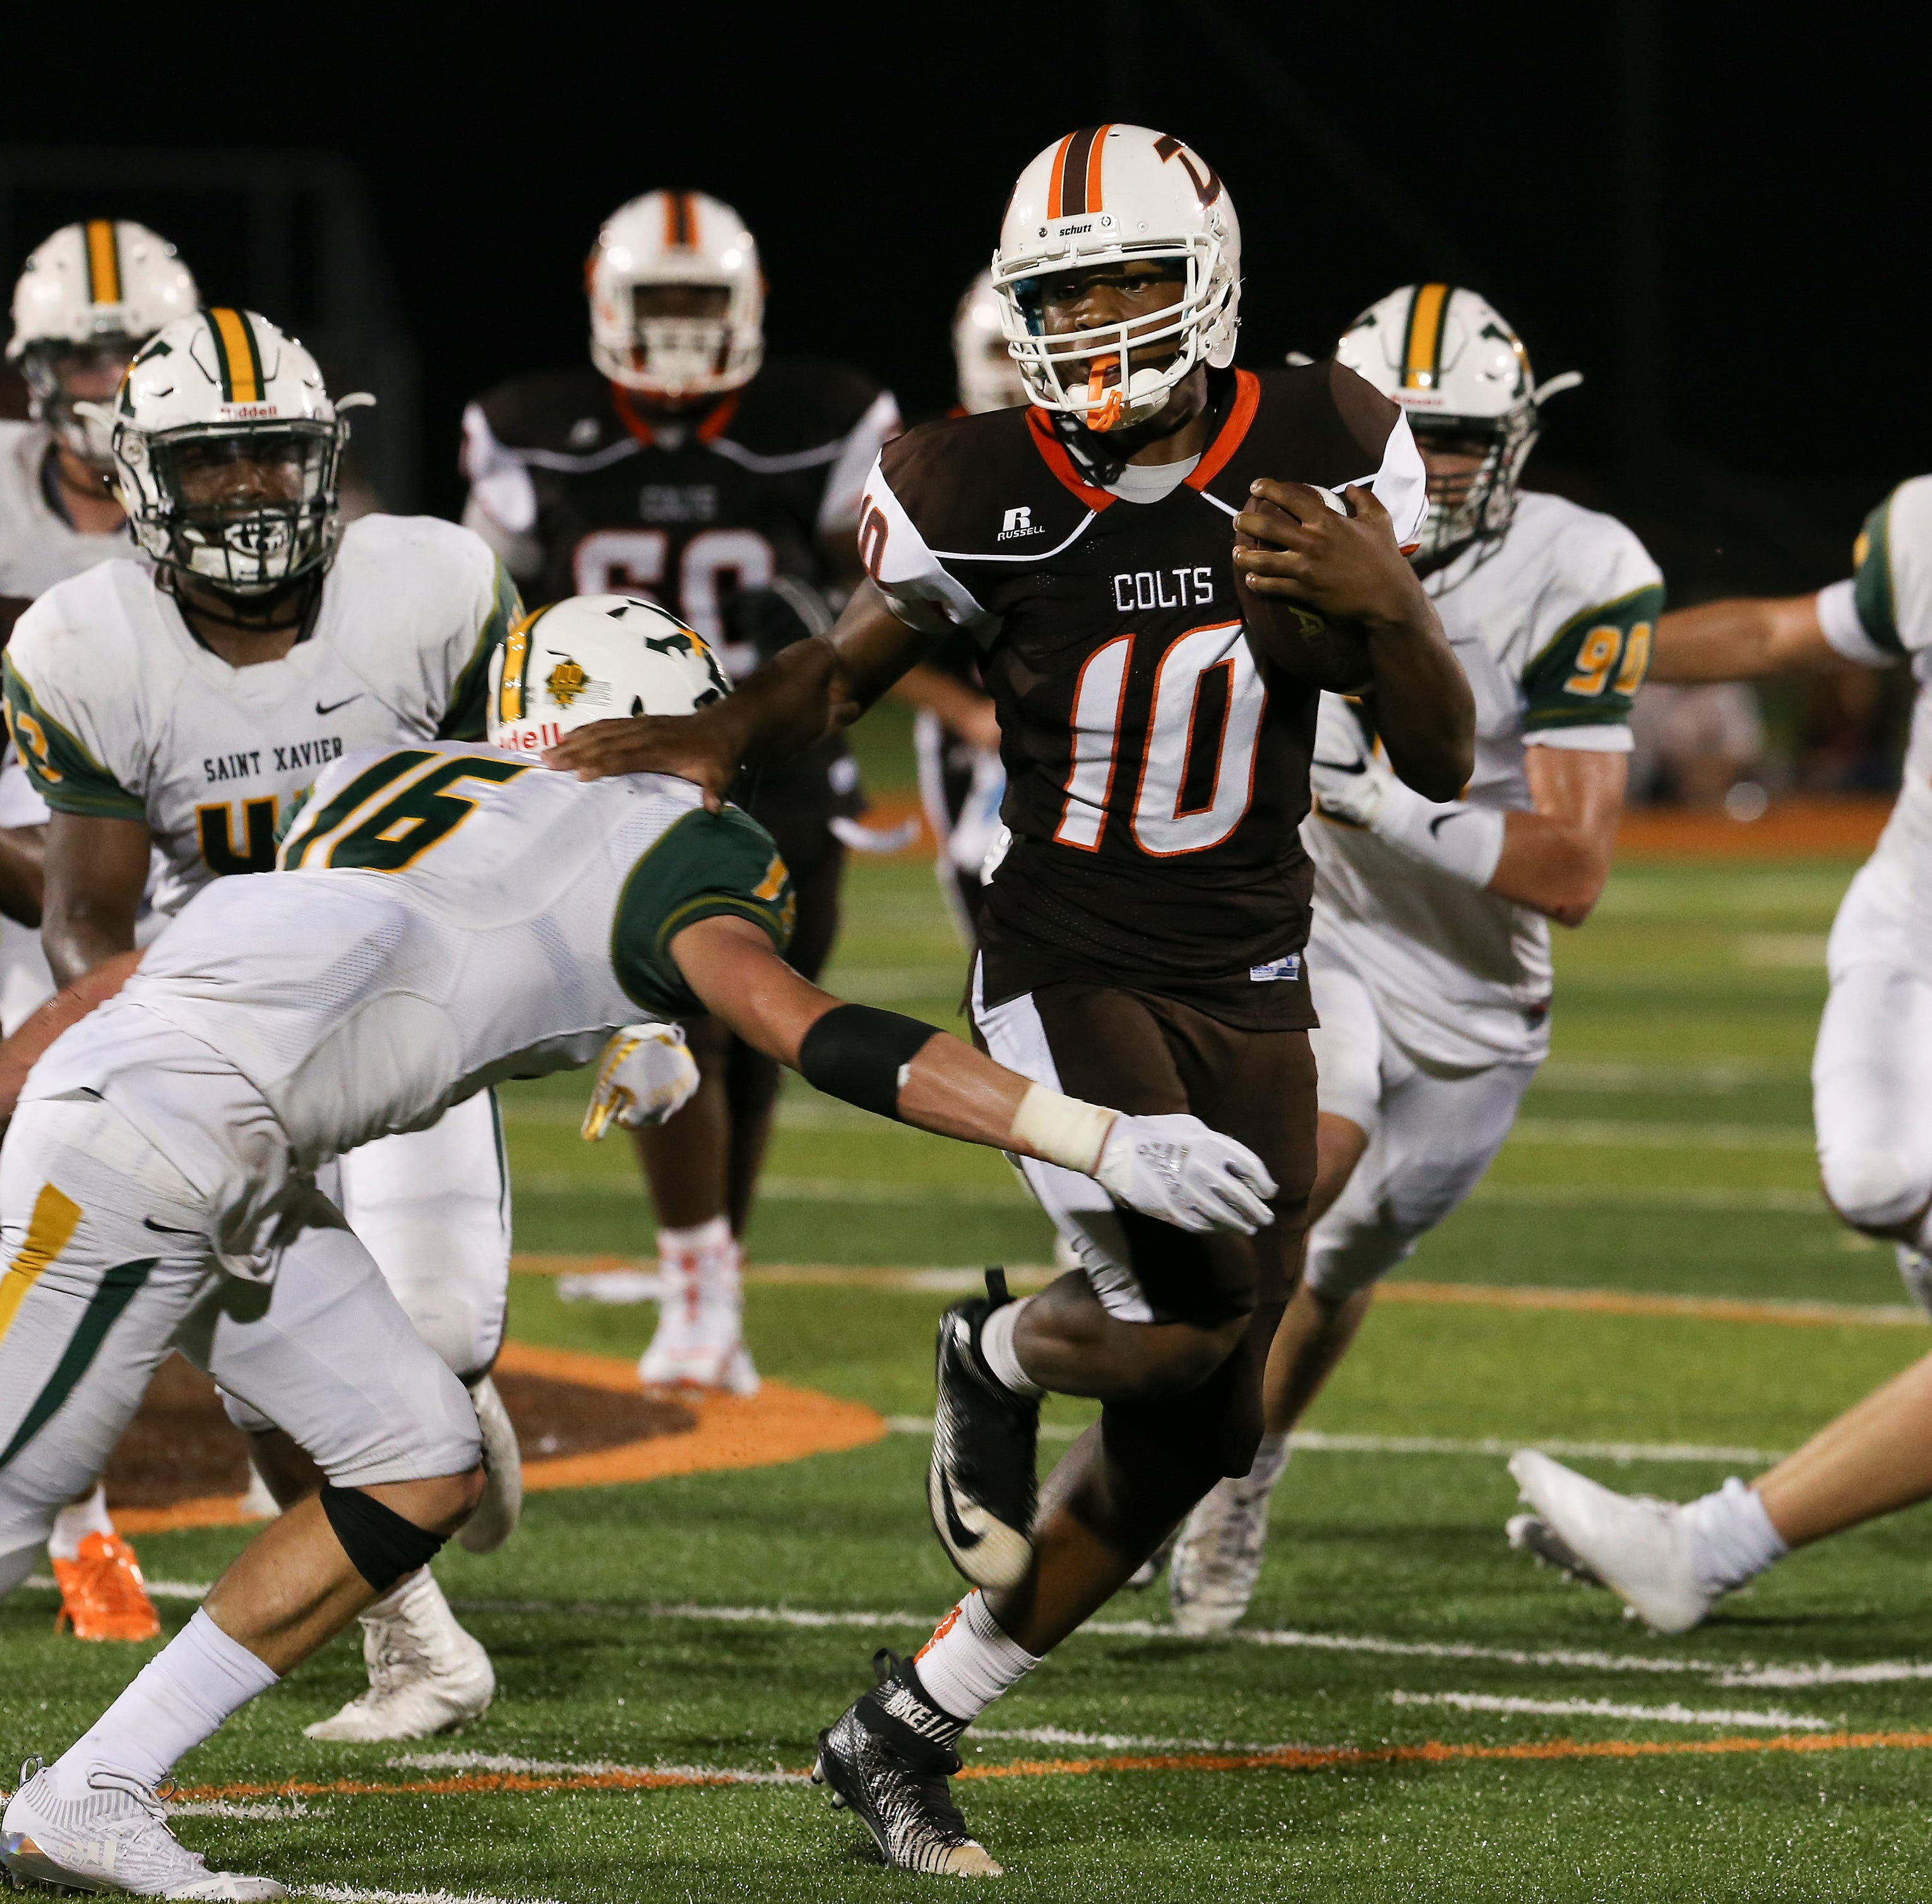 Friday Night Rewind | A historic night at DeSales, Trinity loses and much more